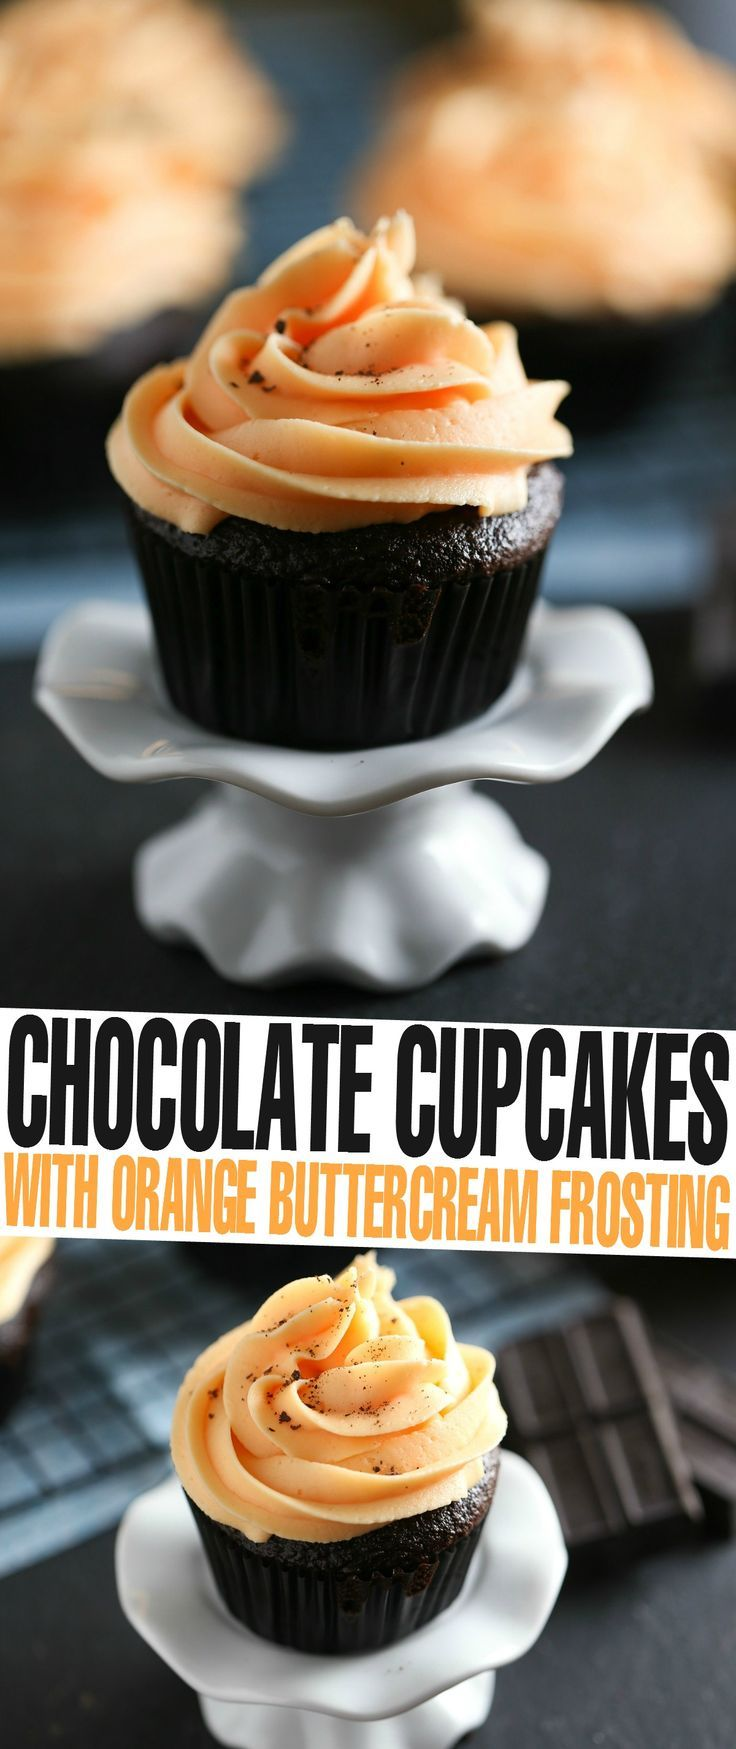 Moist and flavourful Chocolate Cupcakes topped with bright Orange Buttercream Frosting. 8/4